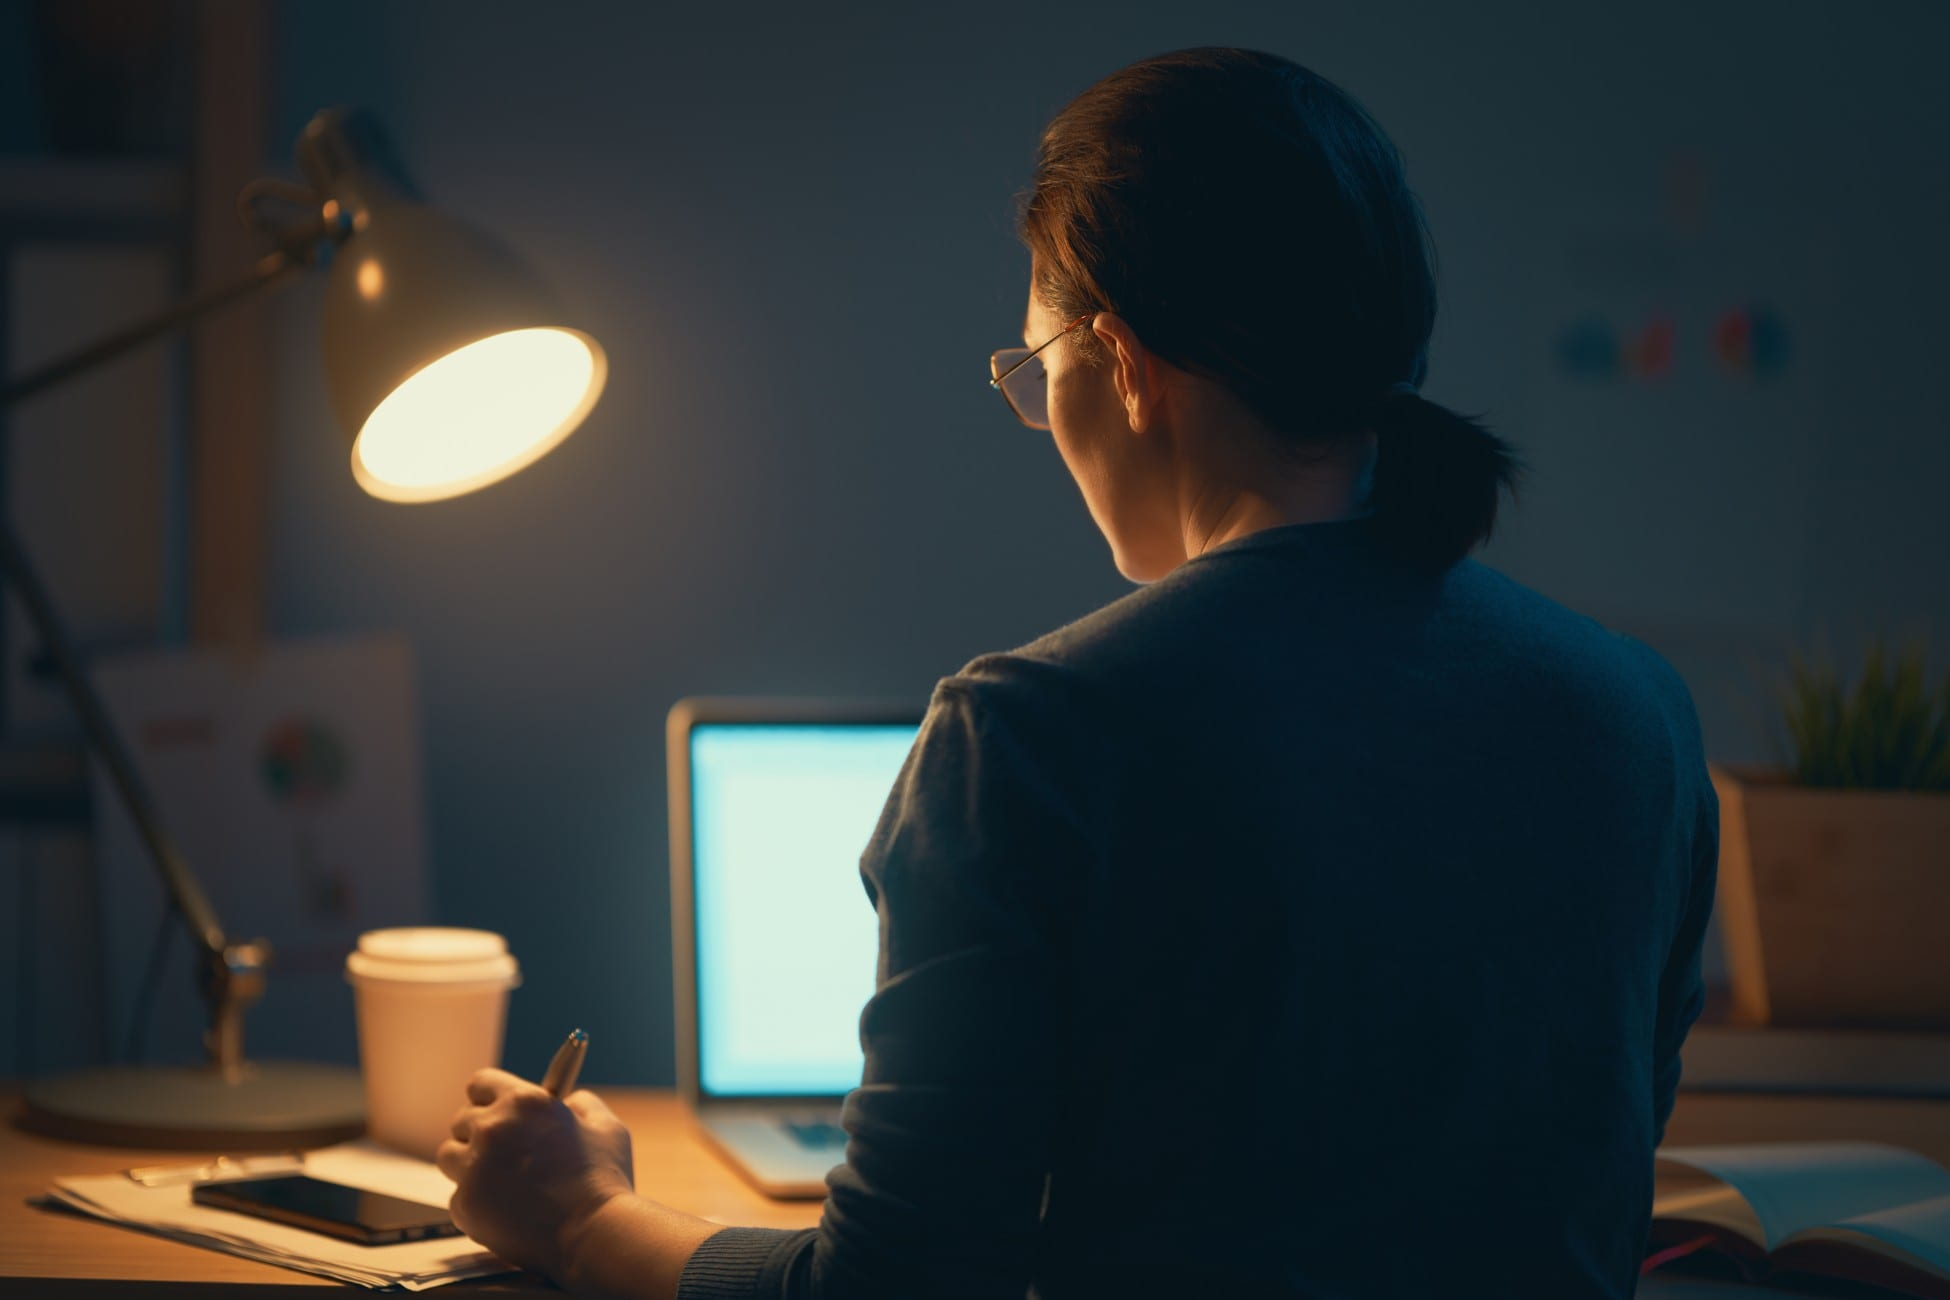 Woman working on a laptop at the night at home.